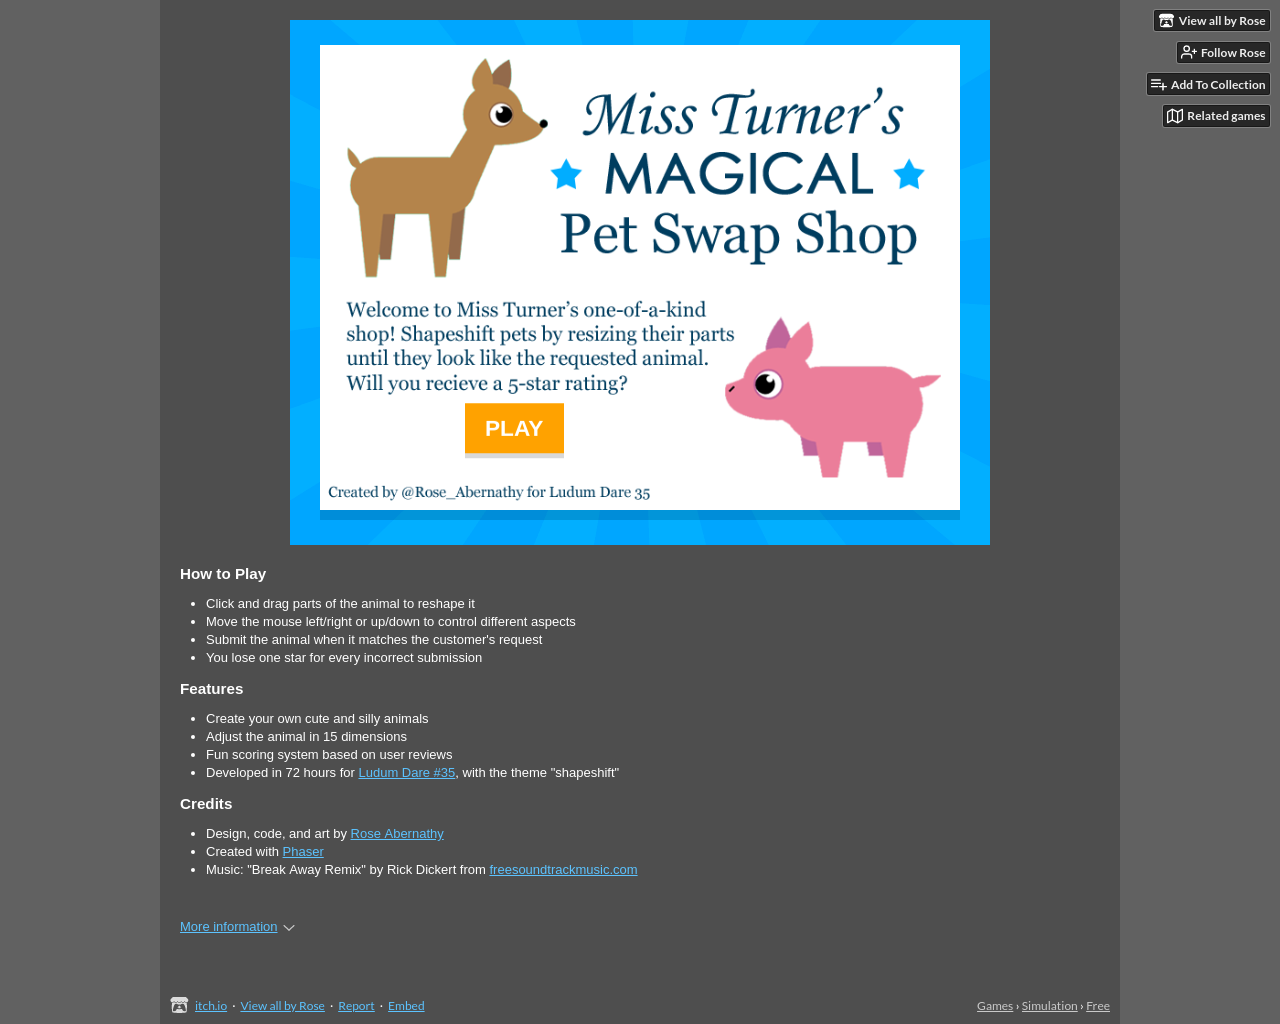 Miss Turners Magical Pet Swap Shop